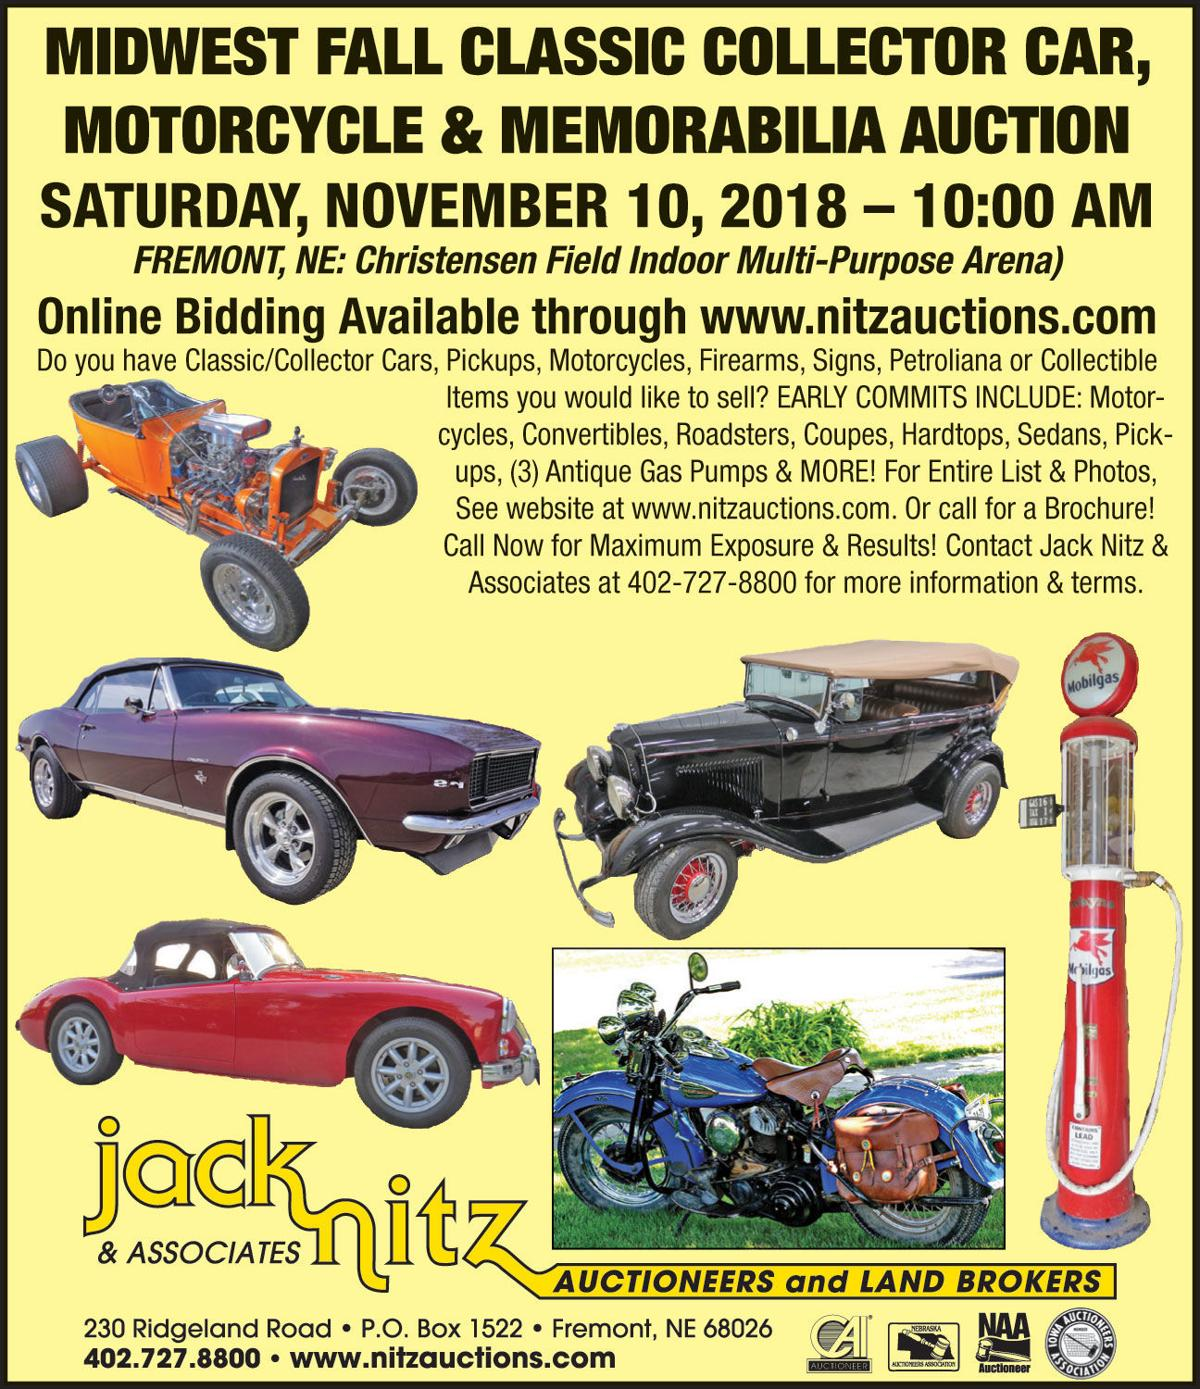 Midwest Fall classic collector car, motorcycle & memorabilia auction